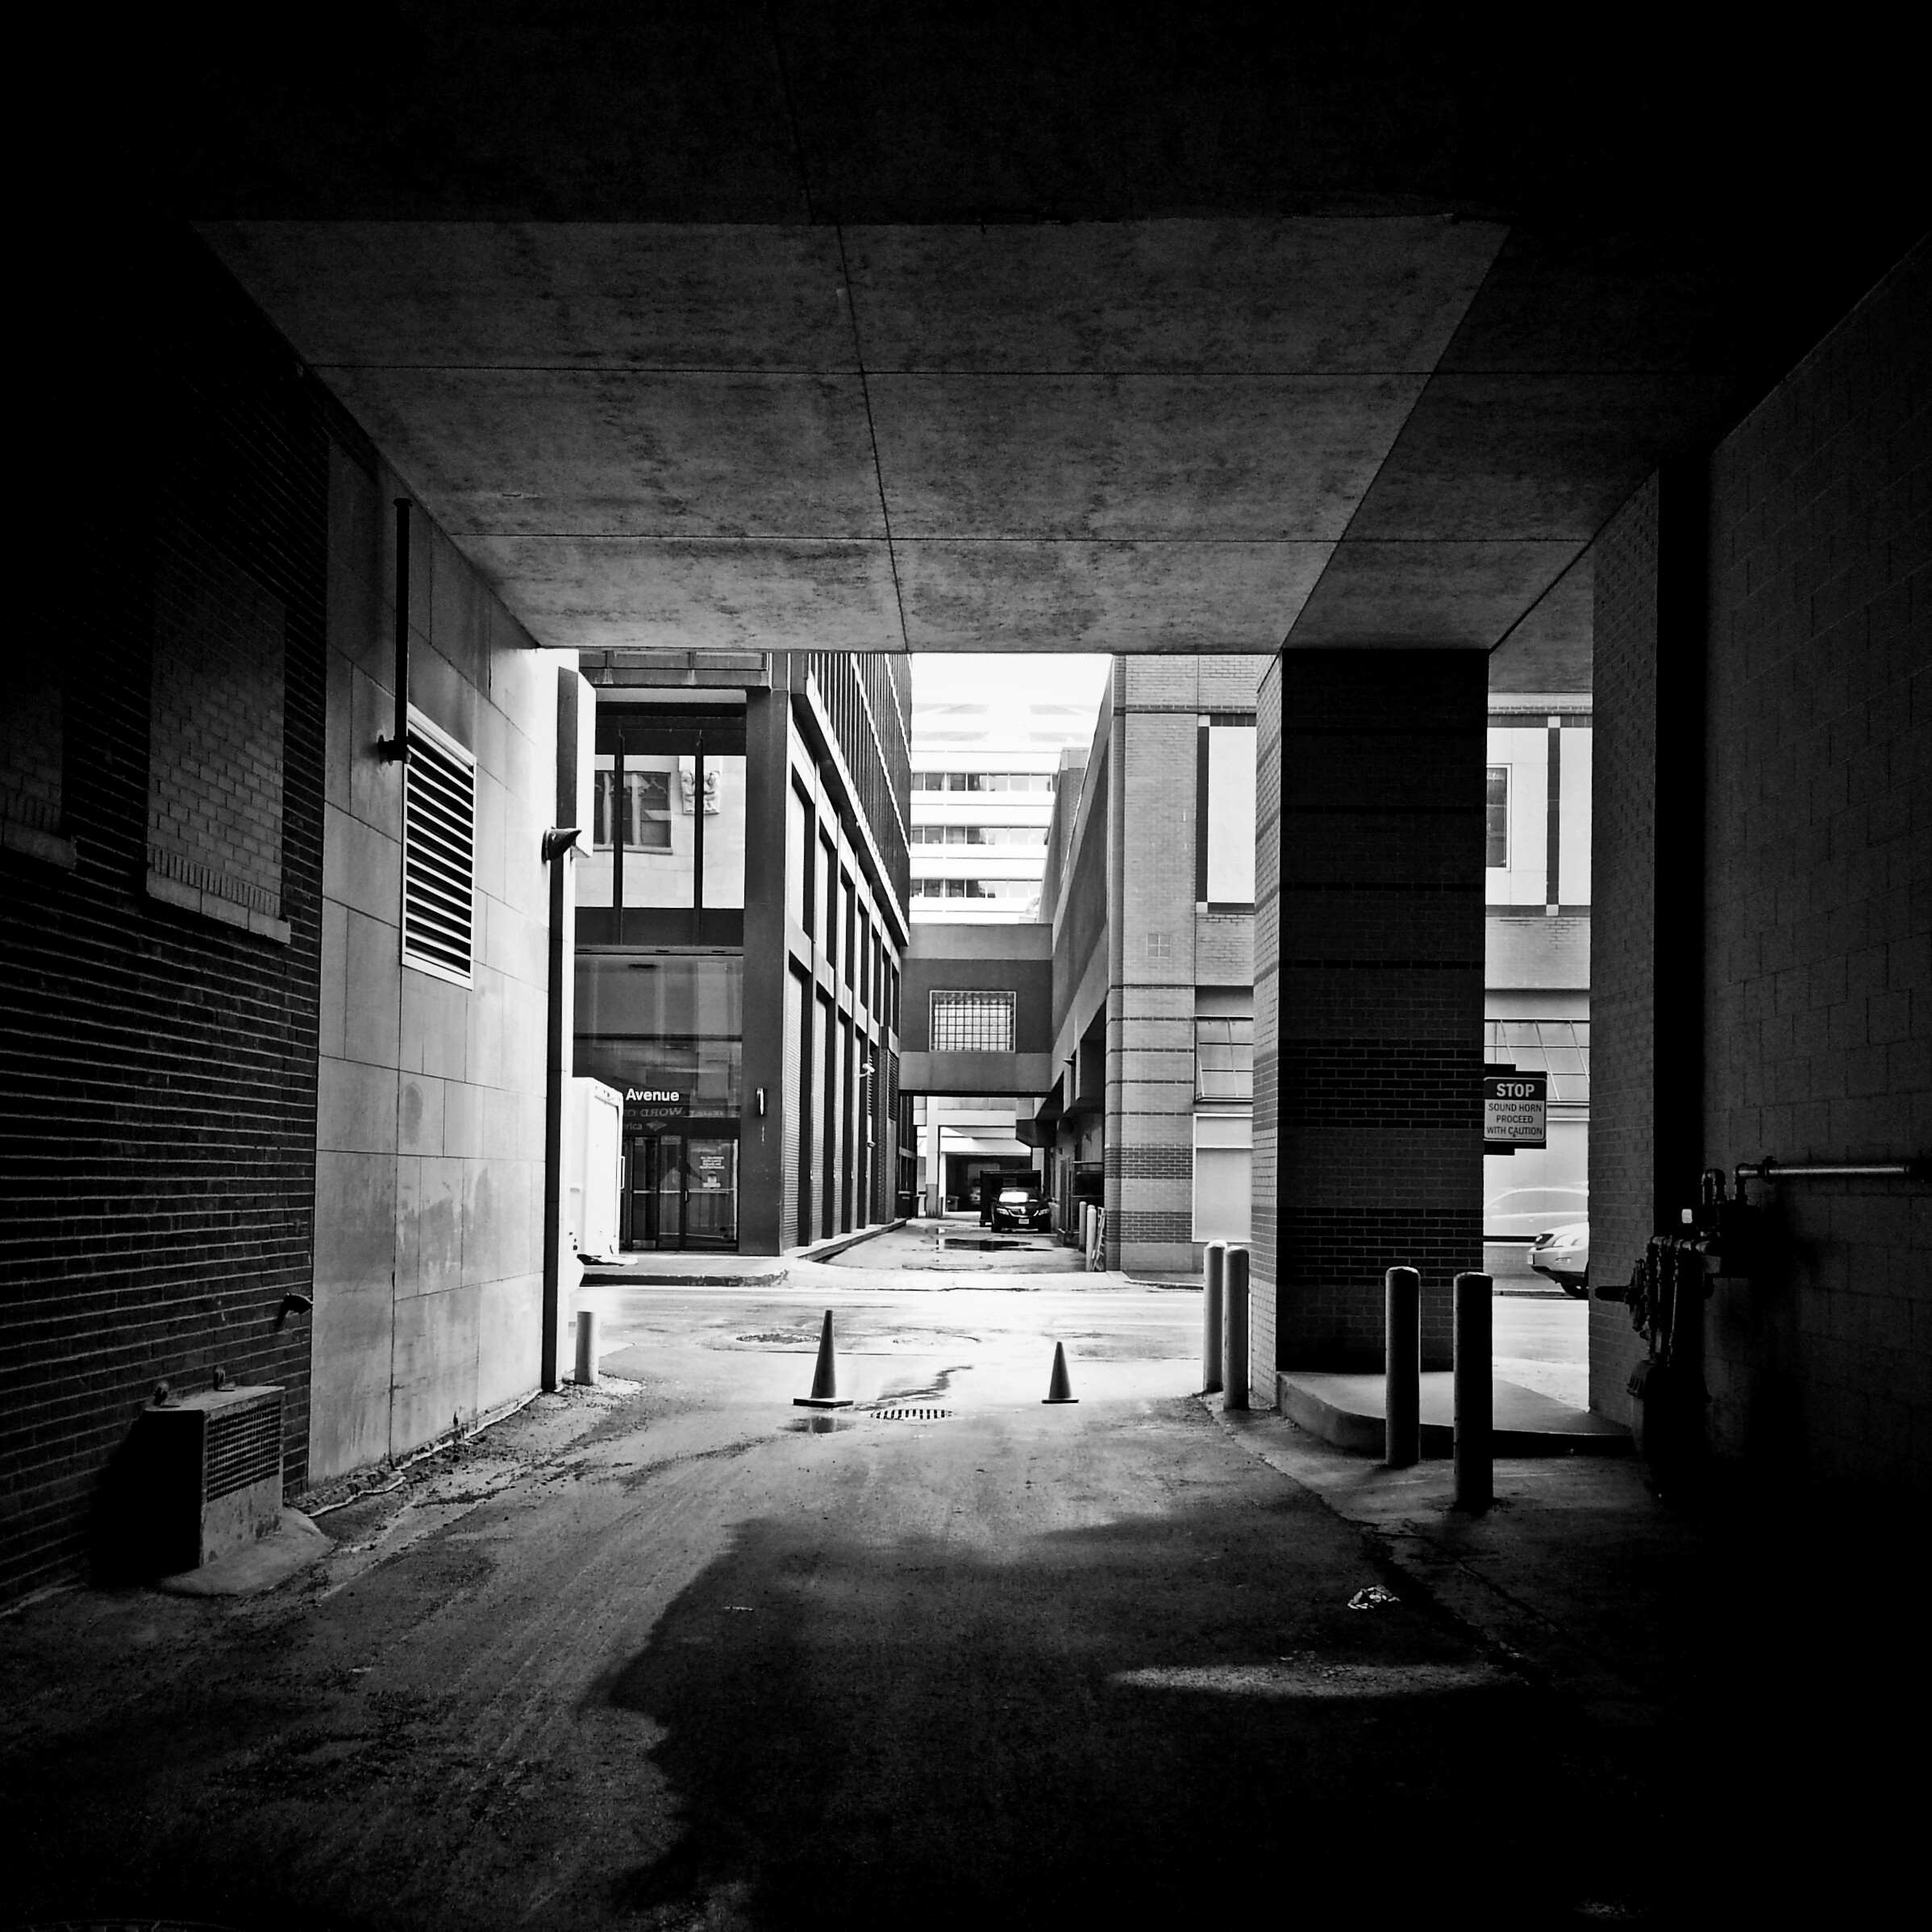 Alleyway in black and white